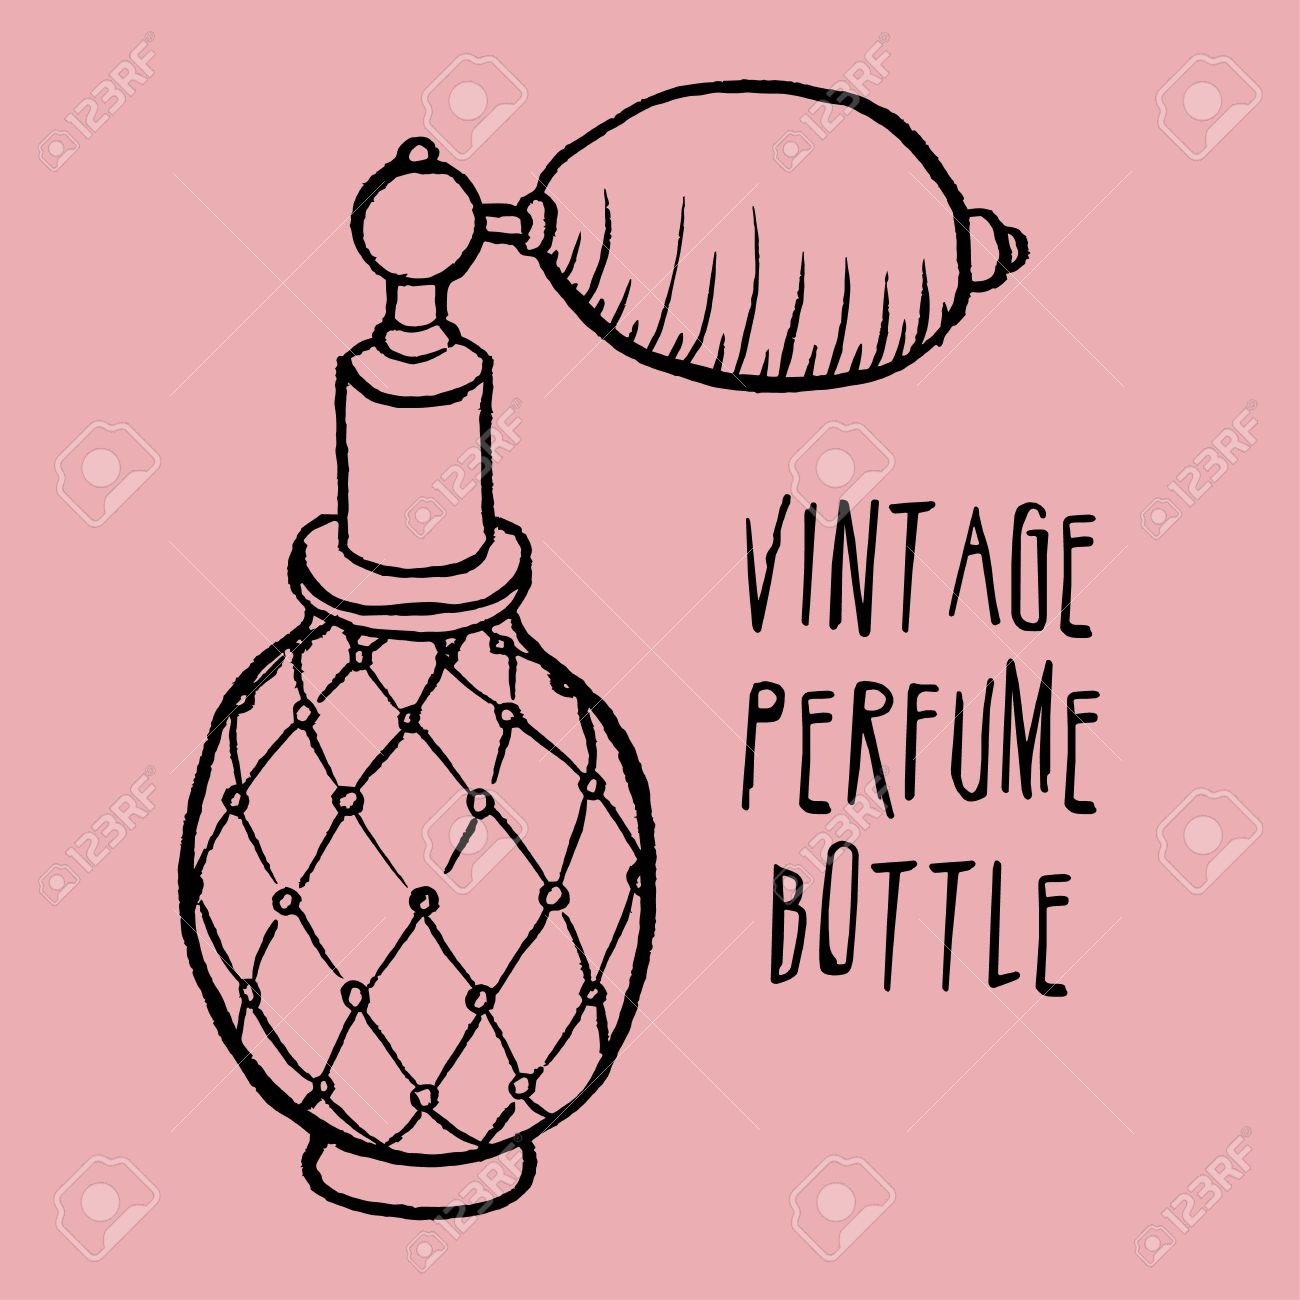 1300x1300 Pen And Ink Drawn Vintage Perfume Bottle Royalty Free Cliparts